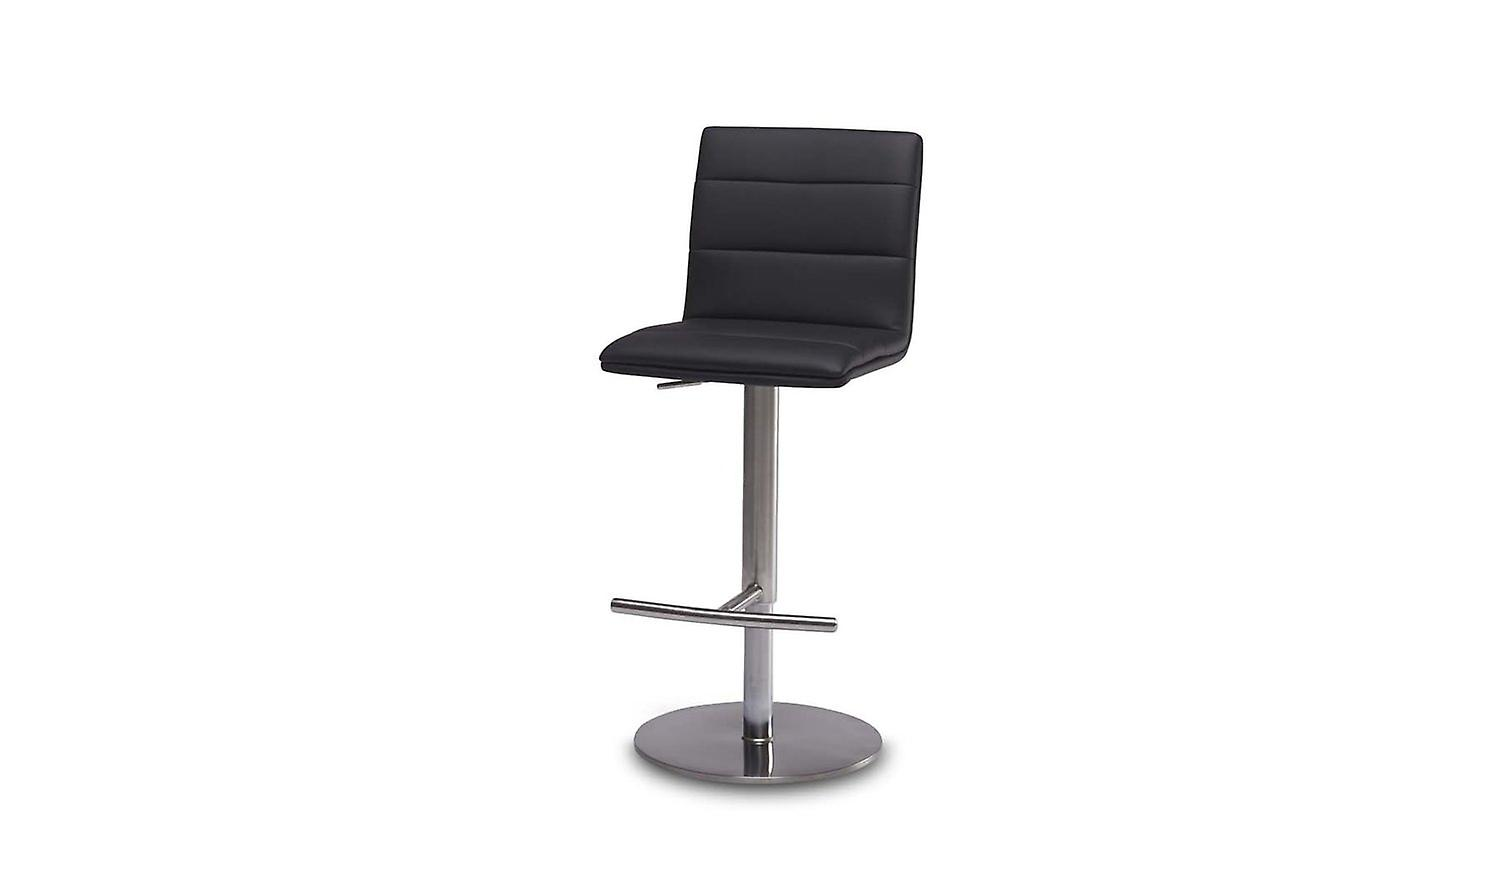 Furnhouse Bar Chair Petra, Black PU, Metal Base, 42x57x87-112 cm